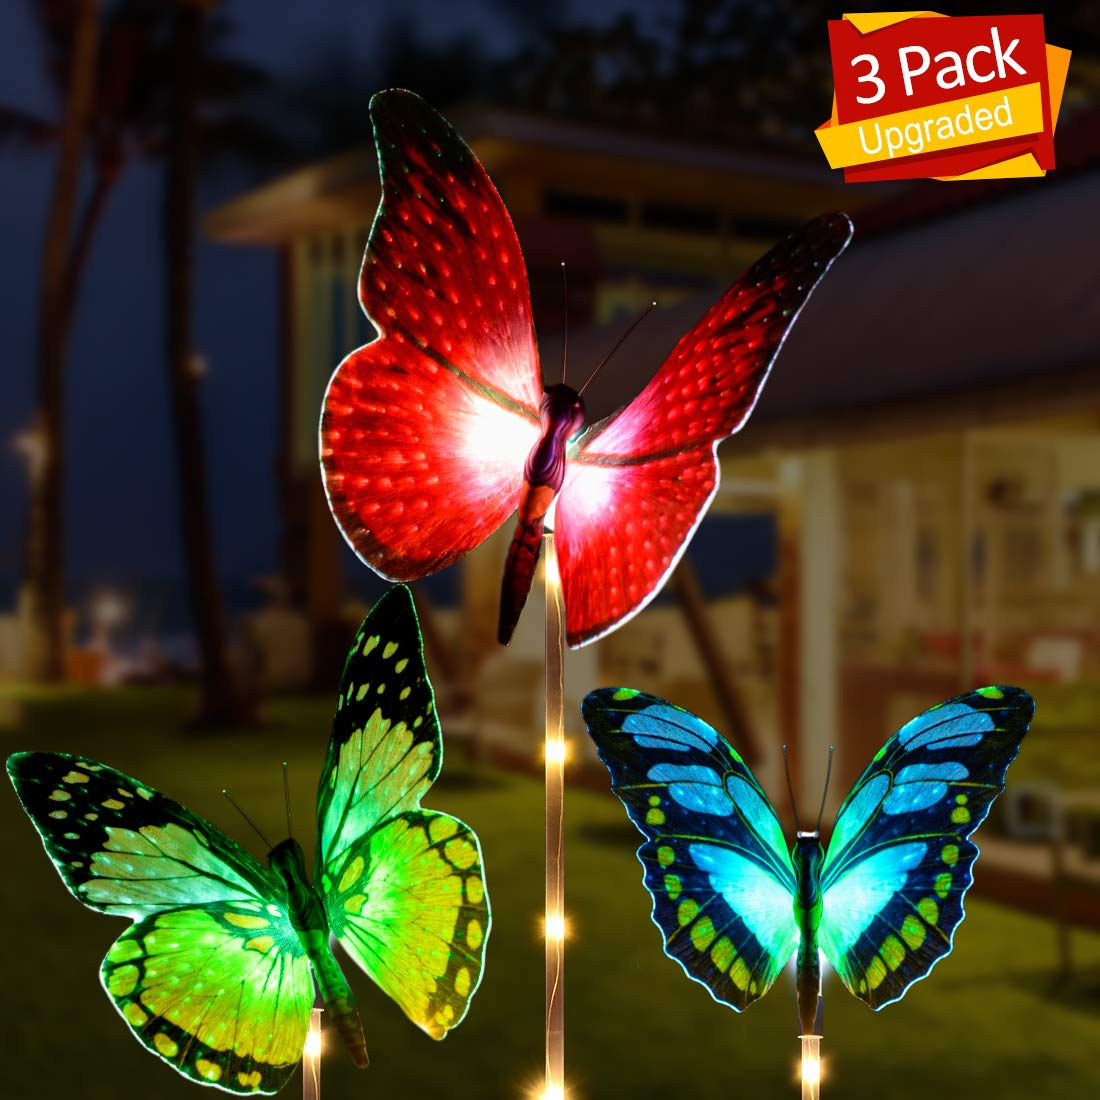 Outdoor Solar Garden Lights, Aockis 3 Pack Solar Stake Light with Fiber Optic Butterfly Decorative Lights,Multi-Color Changing LED Solar Lights (Red Yellow Green)